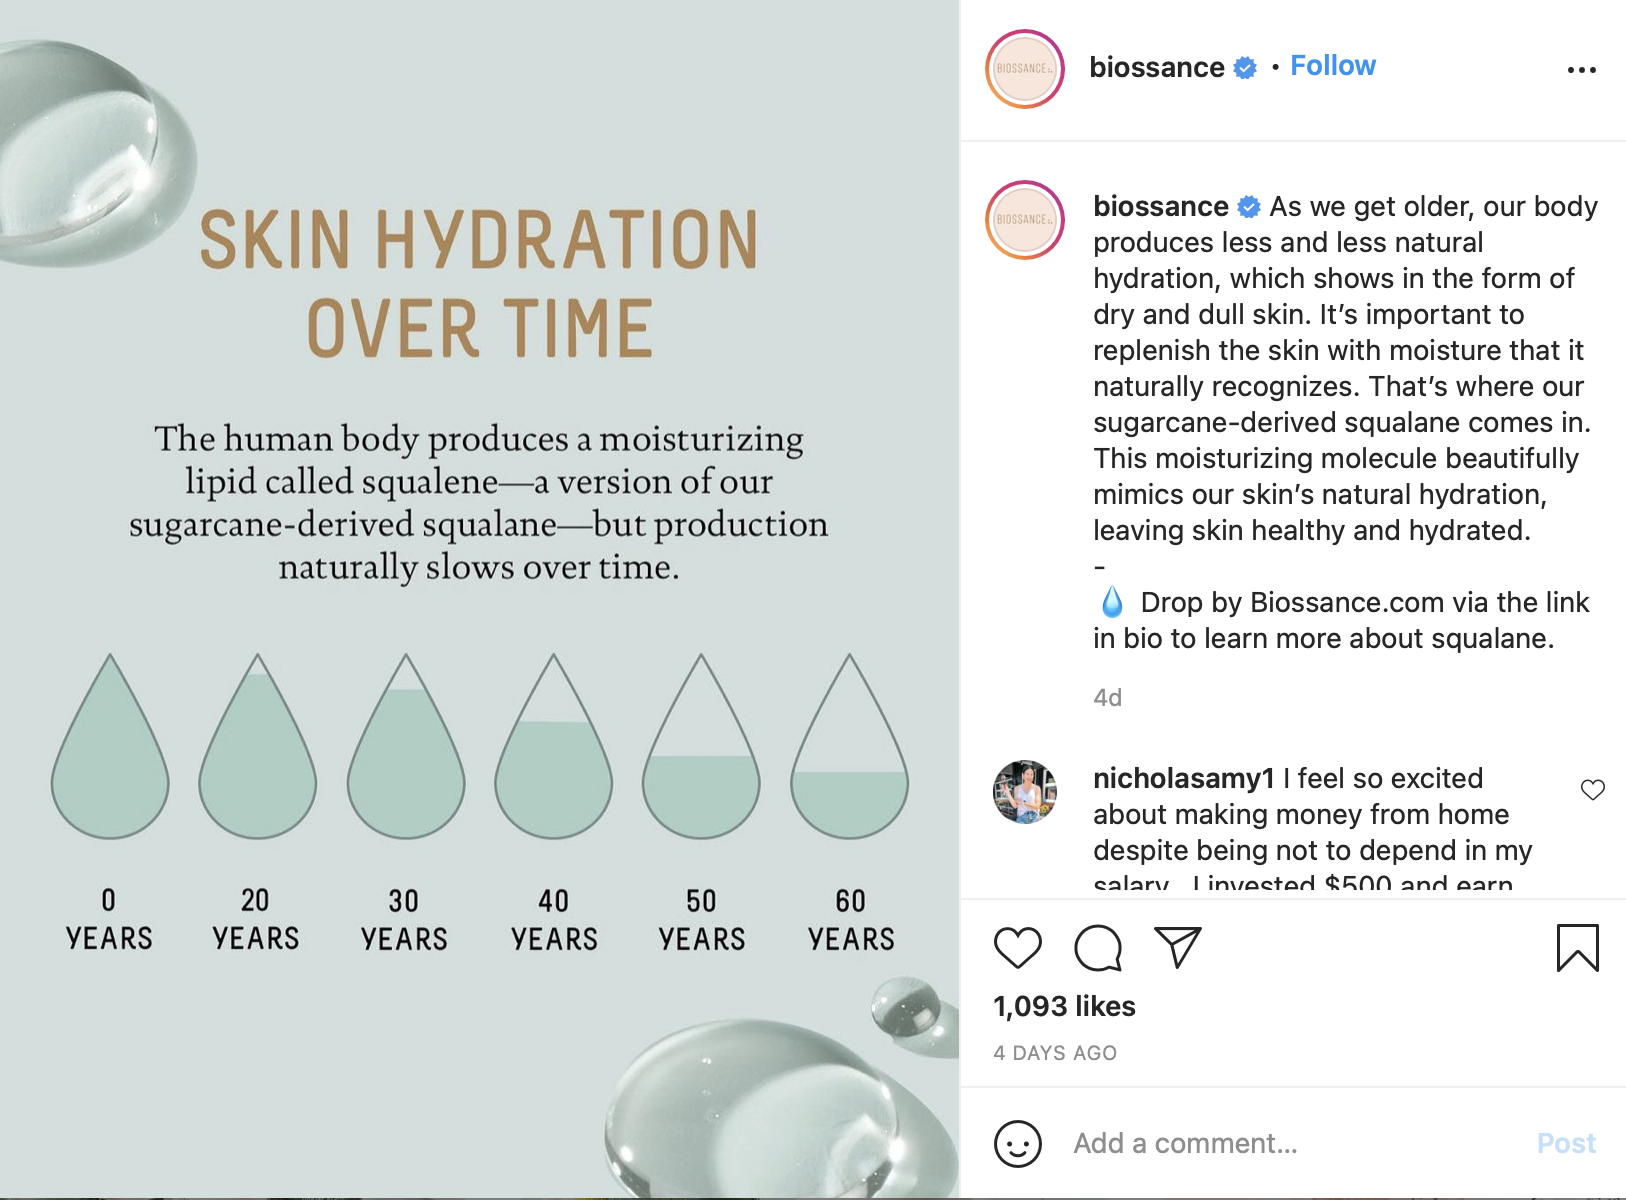 Biossance Instagram content for the awareness content marketing